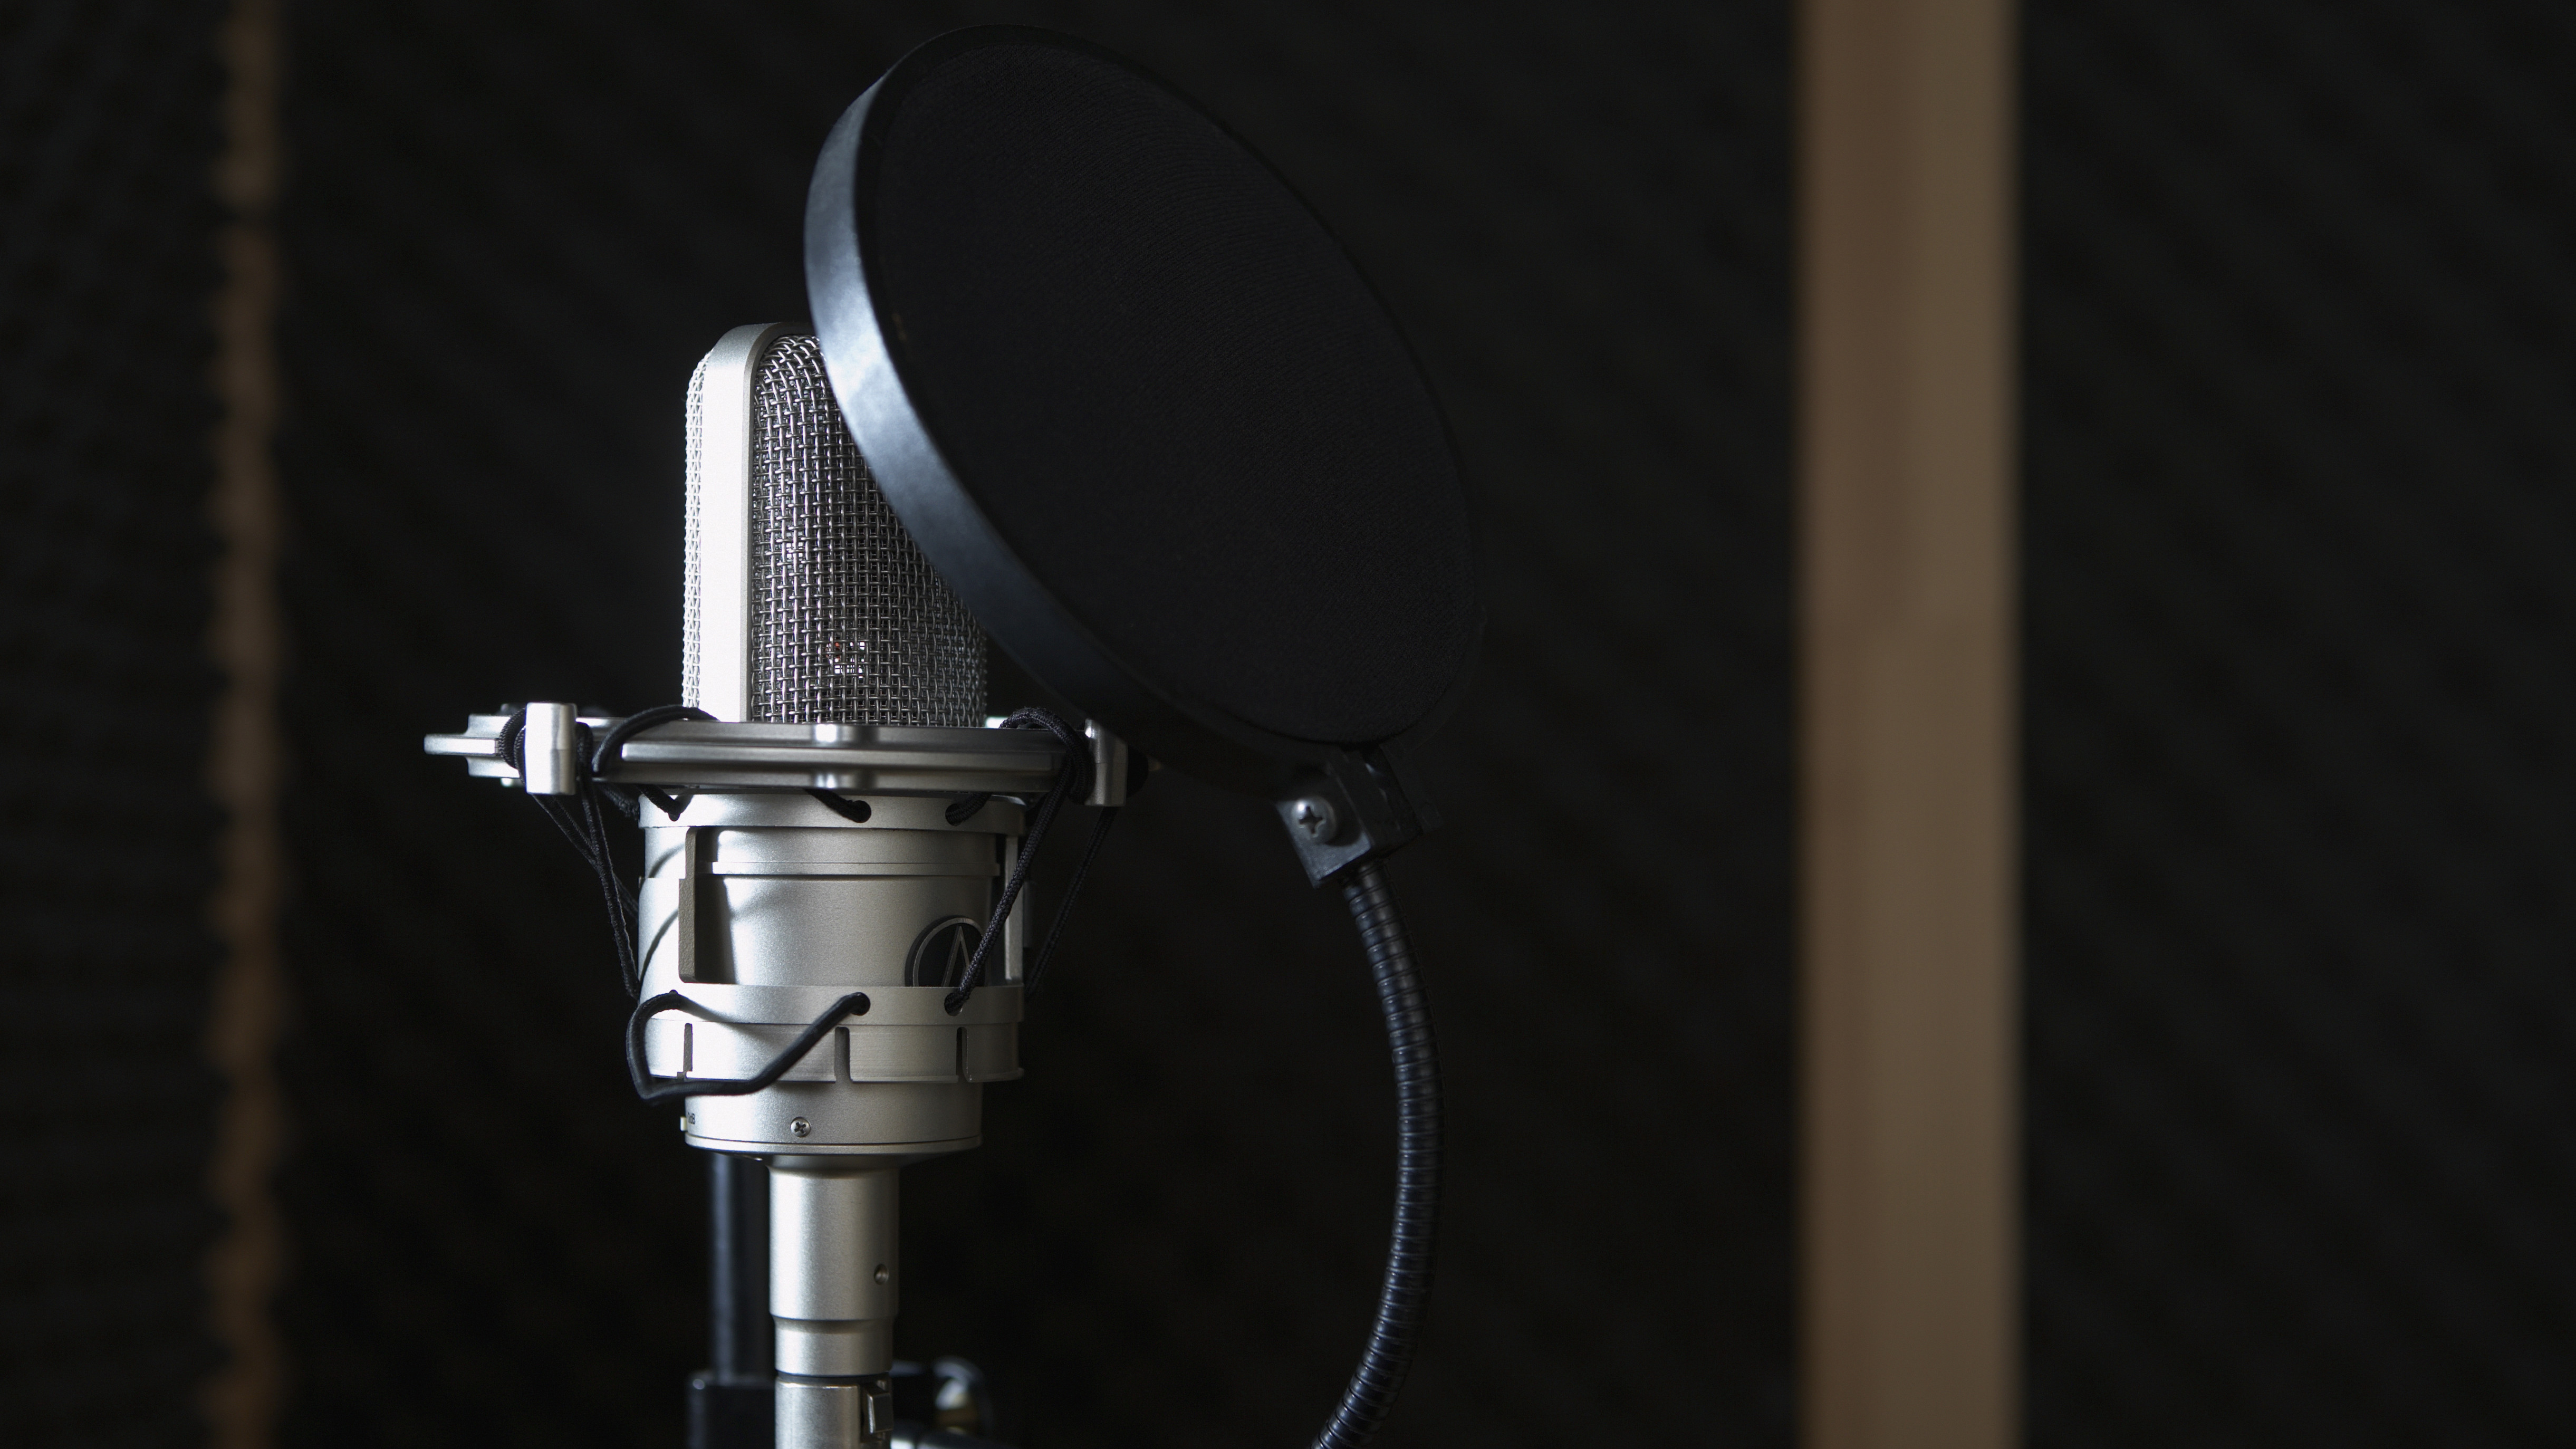 96 vocal production tips | MusicRadar